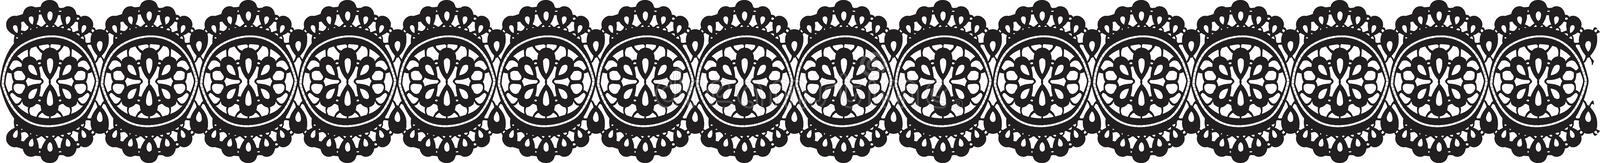 Download Lace stock vector. Image of flower, crochet, cotton, decorative - 22823143